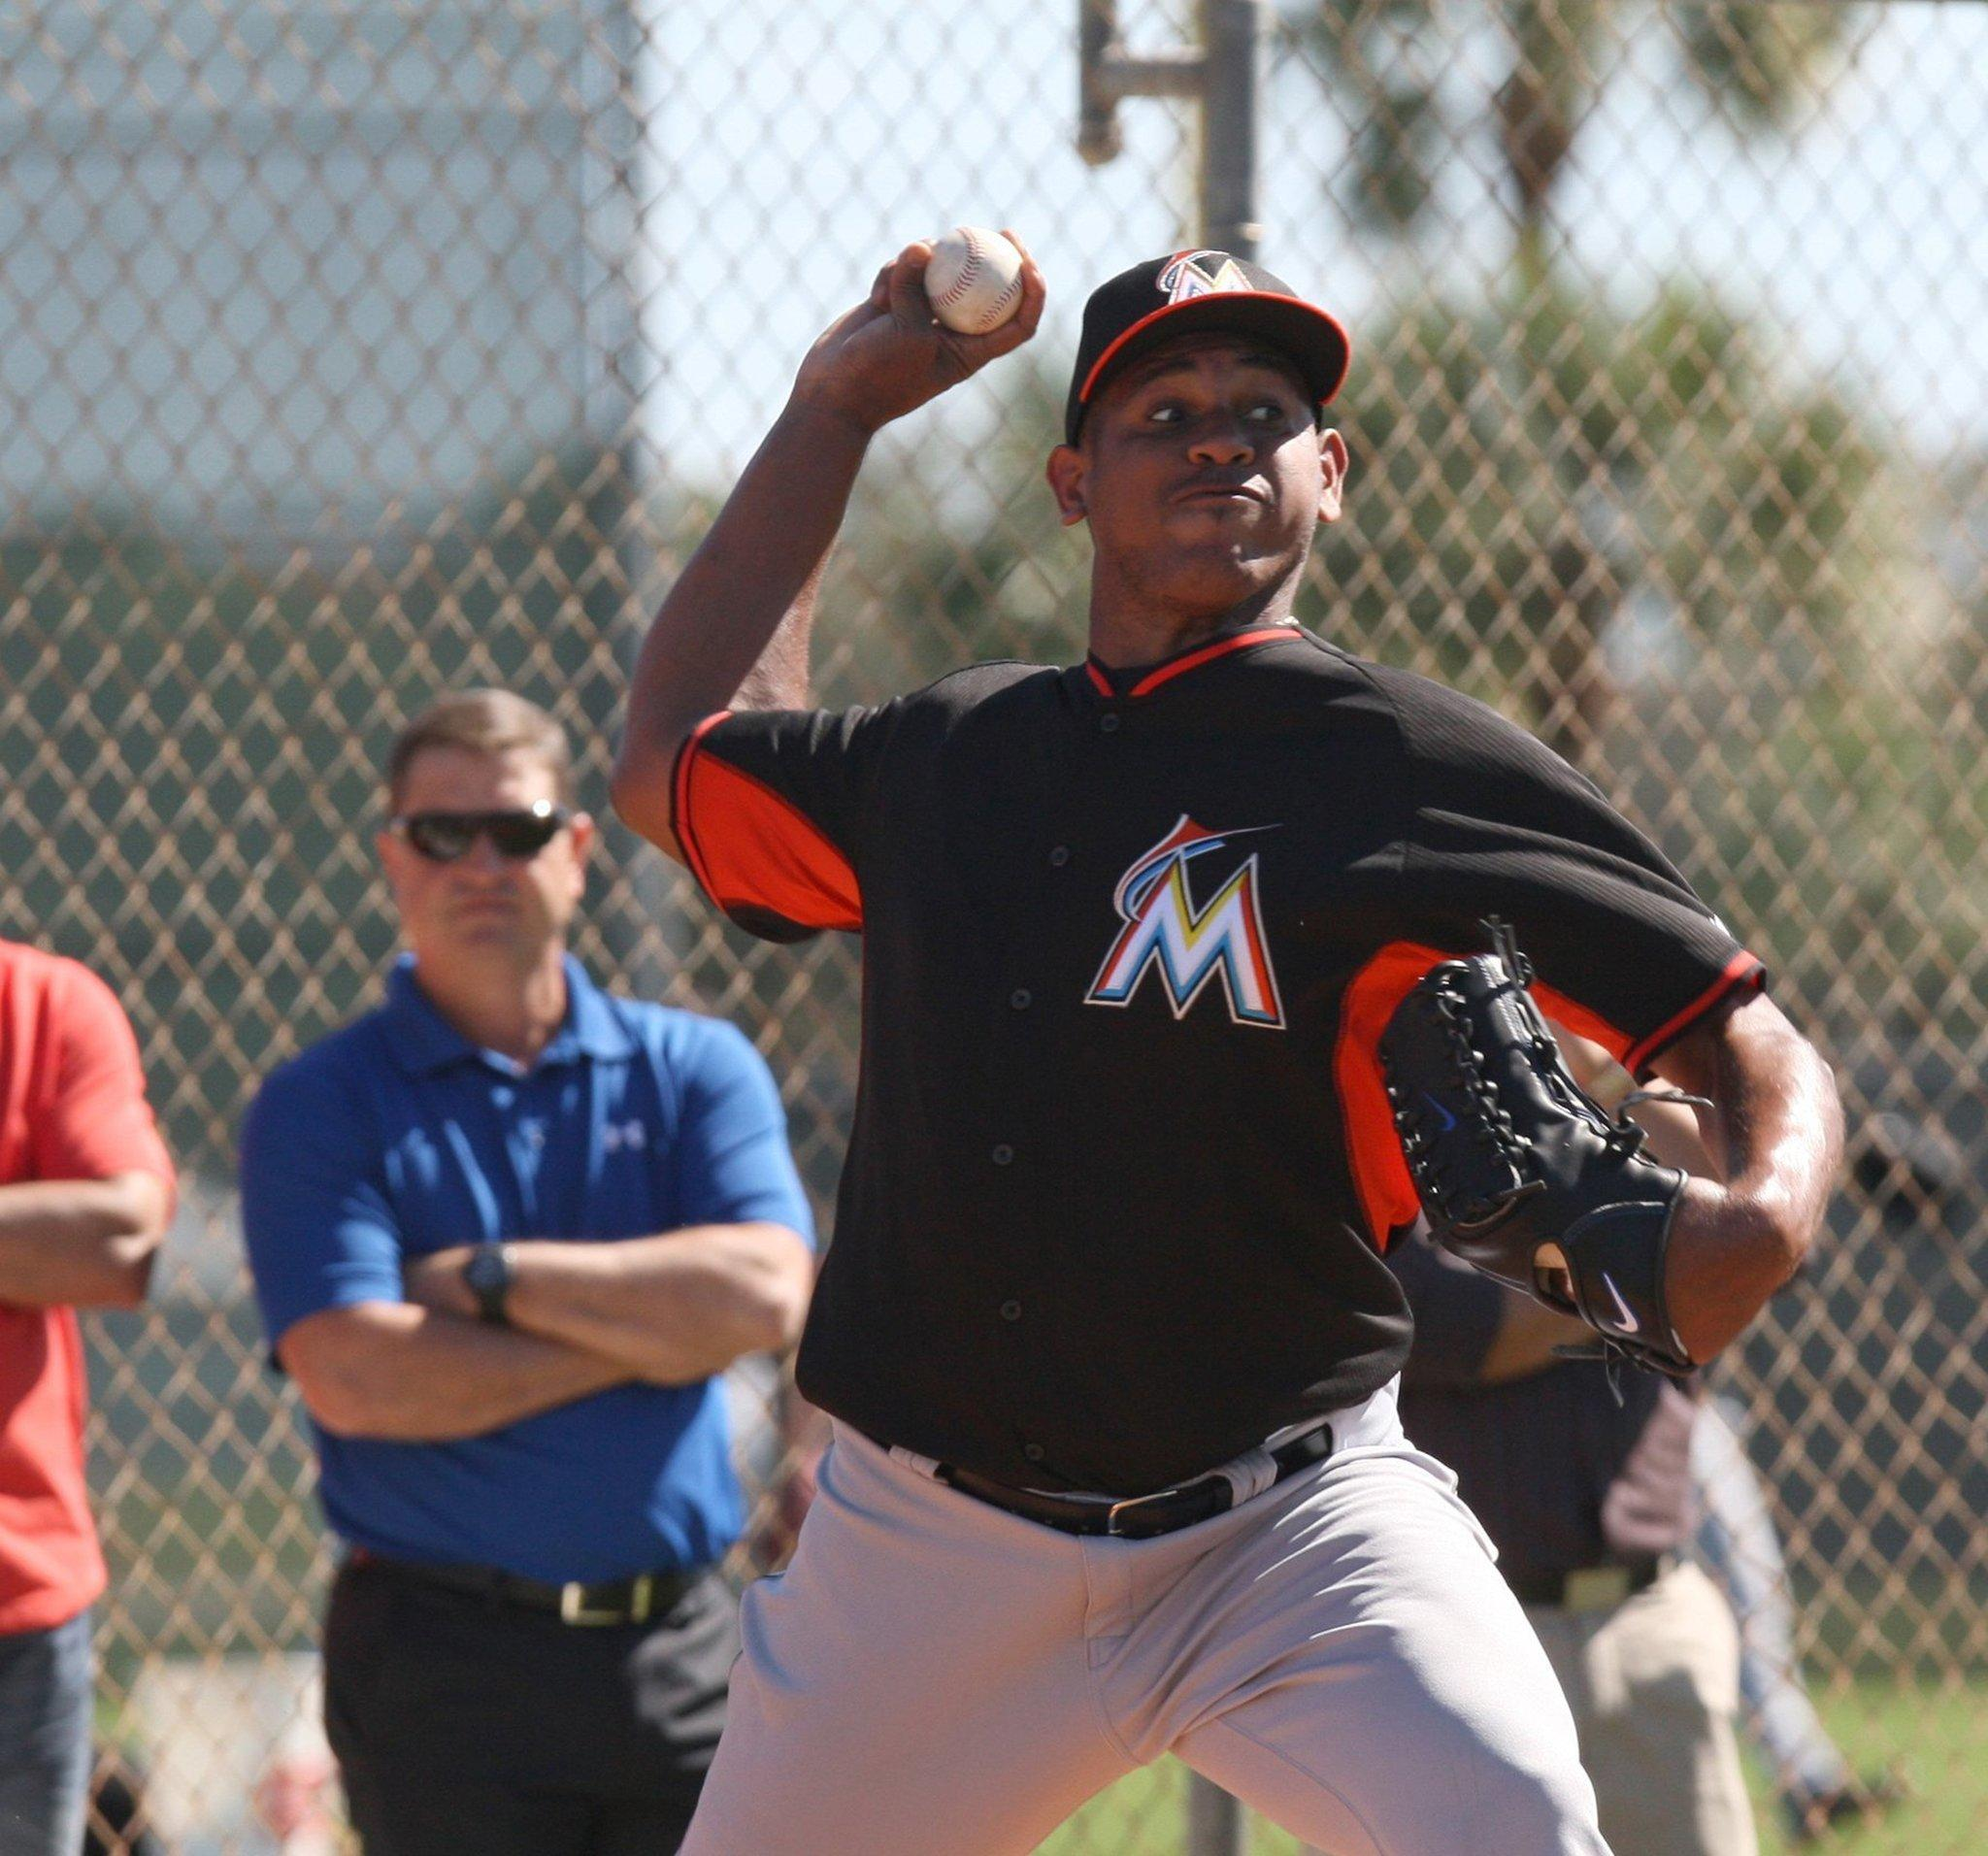 Miami Marlins pitcher Carlos Marmol throws during spring training at Roger Stadium in Jupiter, Fla.